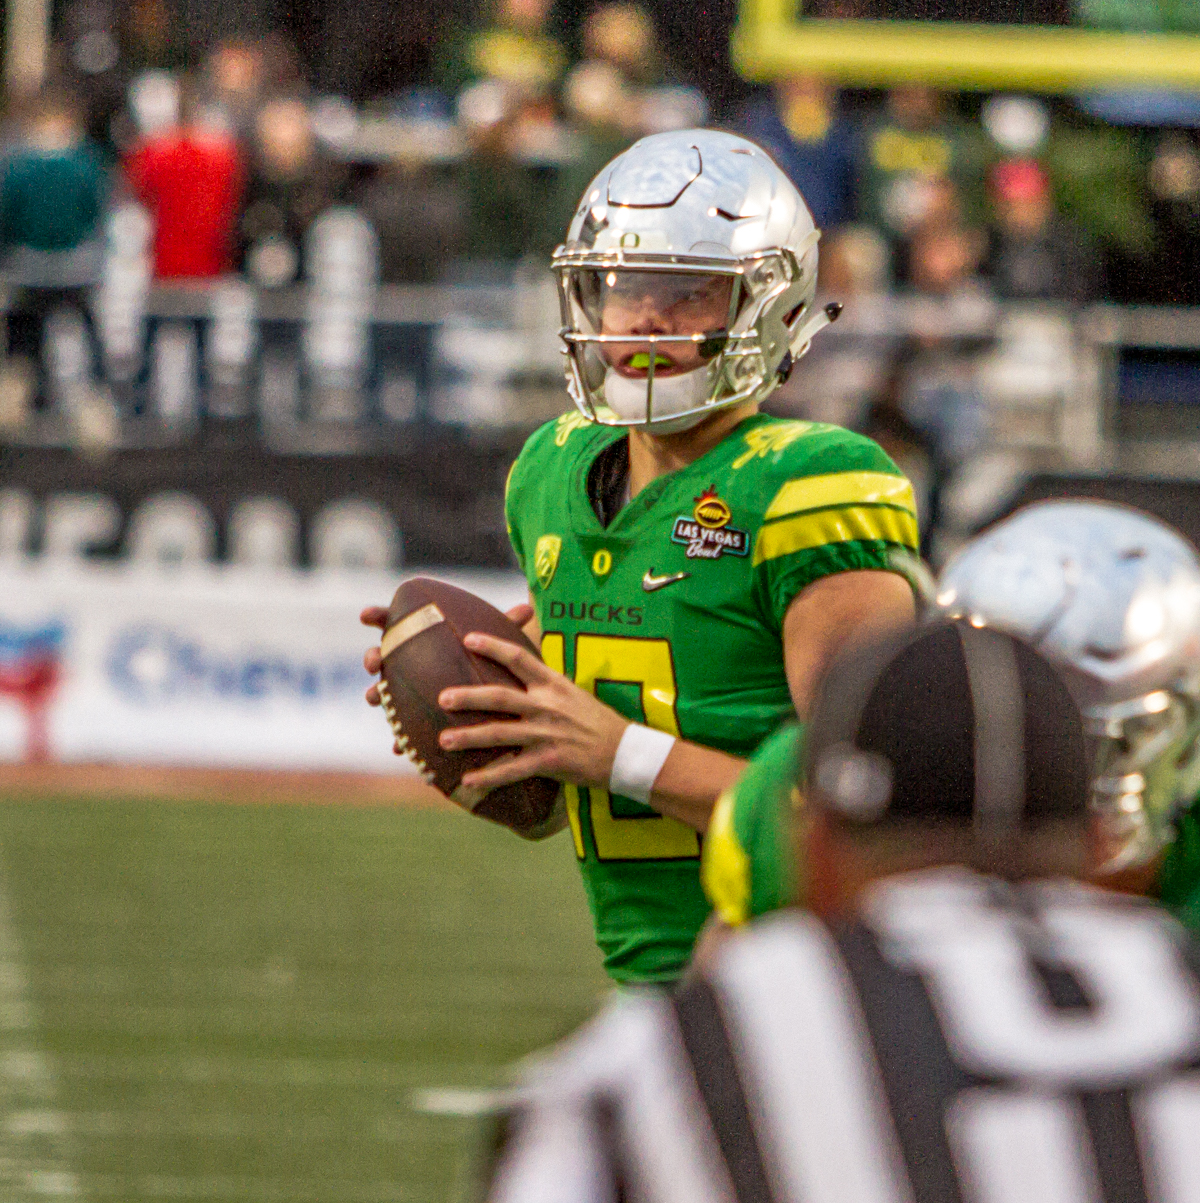 Oregon quarterback Justin Herbert (#10) looks for an open receiver down field. The Boise State Broncos defeated the Oregon Ducks 38 to 28 in the 2017 Las Vegas Bowl at Sam Boyd Stadium in Las Vegas, Nevada on Saturday December 17, 2017. The Las Vegas Bowl served as the first test for Oregon's new Head Coach Mario Cristobal following the loss of former Head Coach Willie Taggart to Florida State University earlier this month. Photo by Ben Lonergan, Oregon News Lab